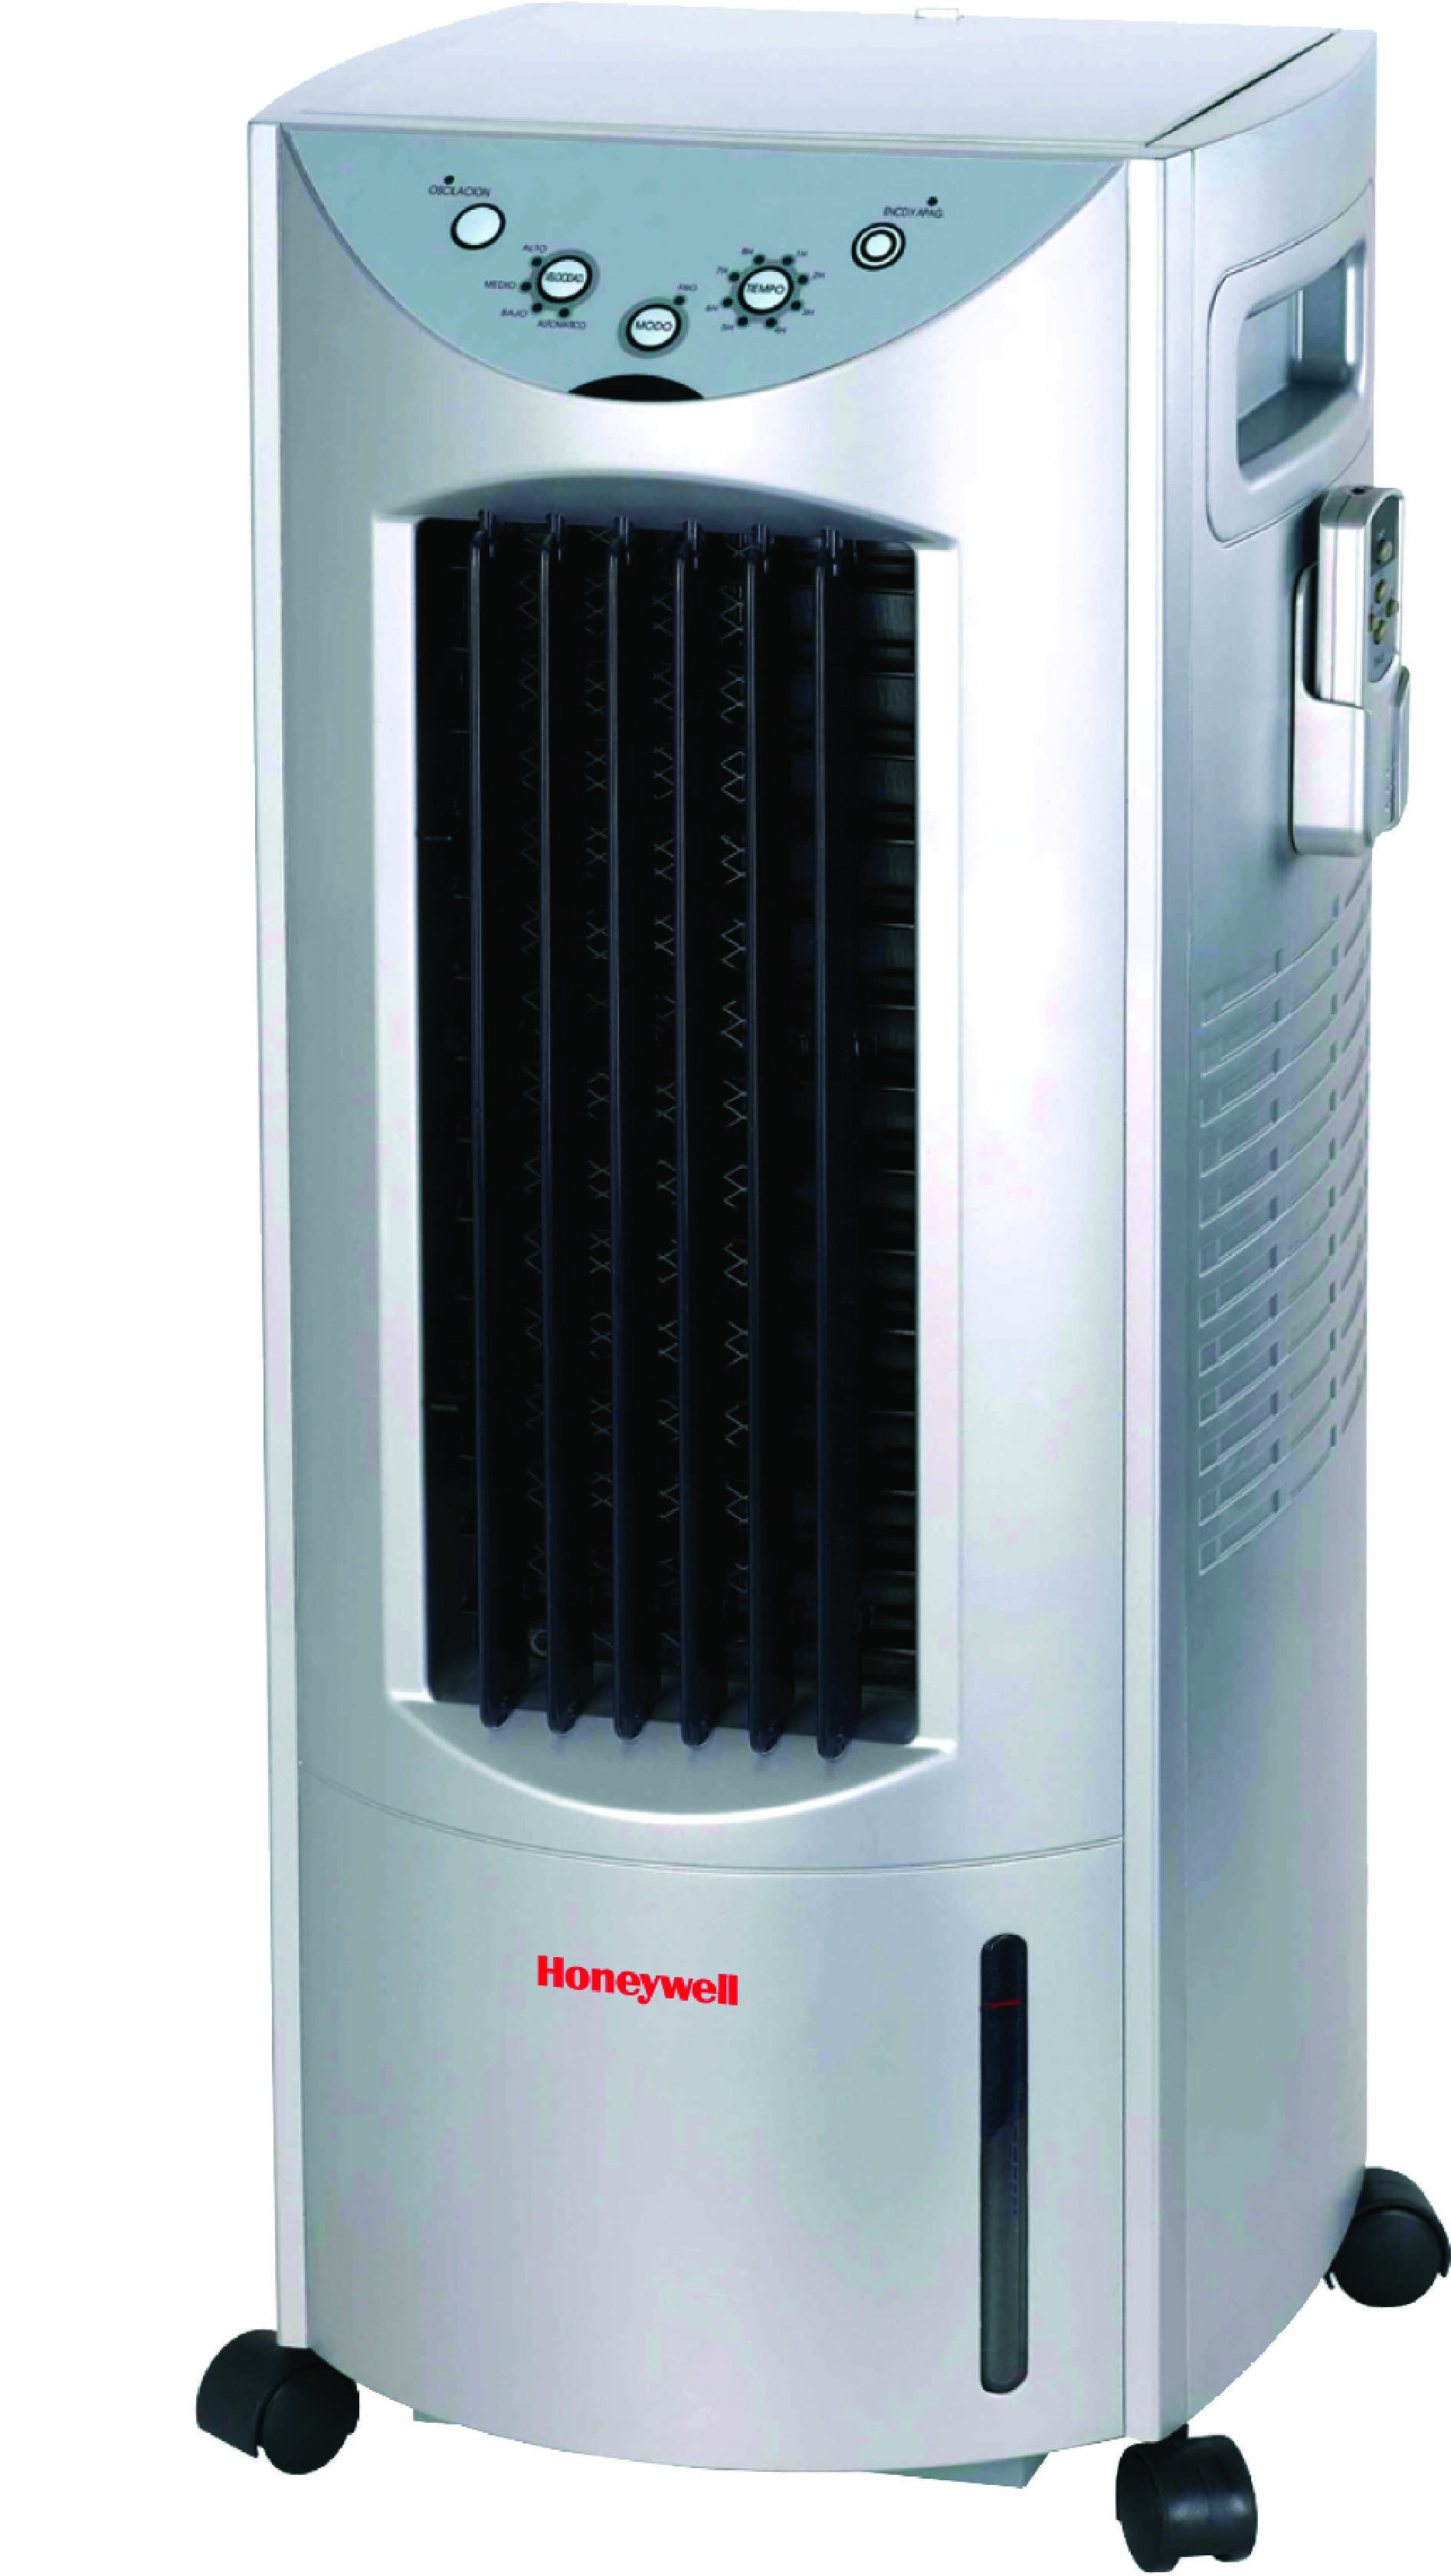 Honeywell Evaporative Air Cooler CS12AE Portable air